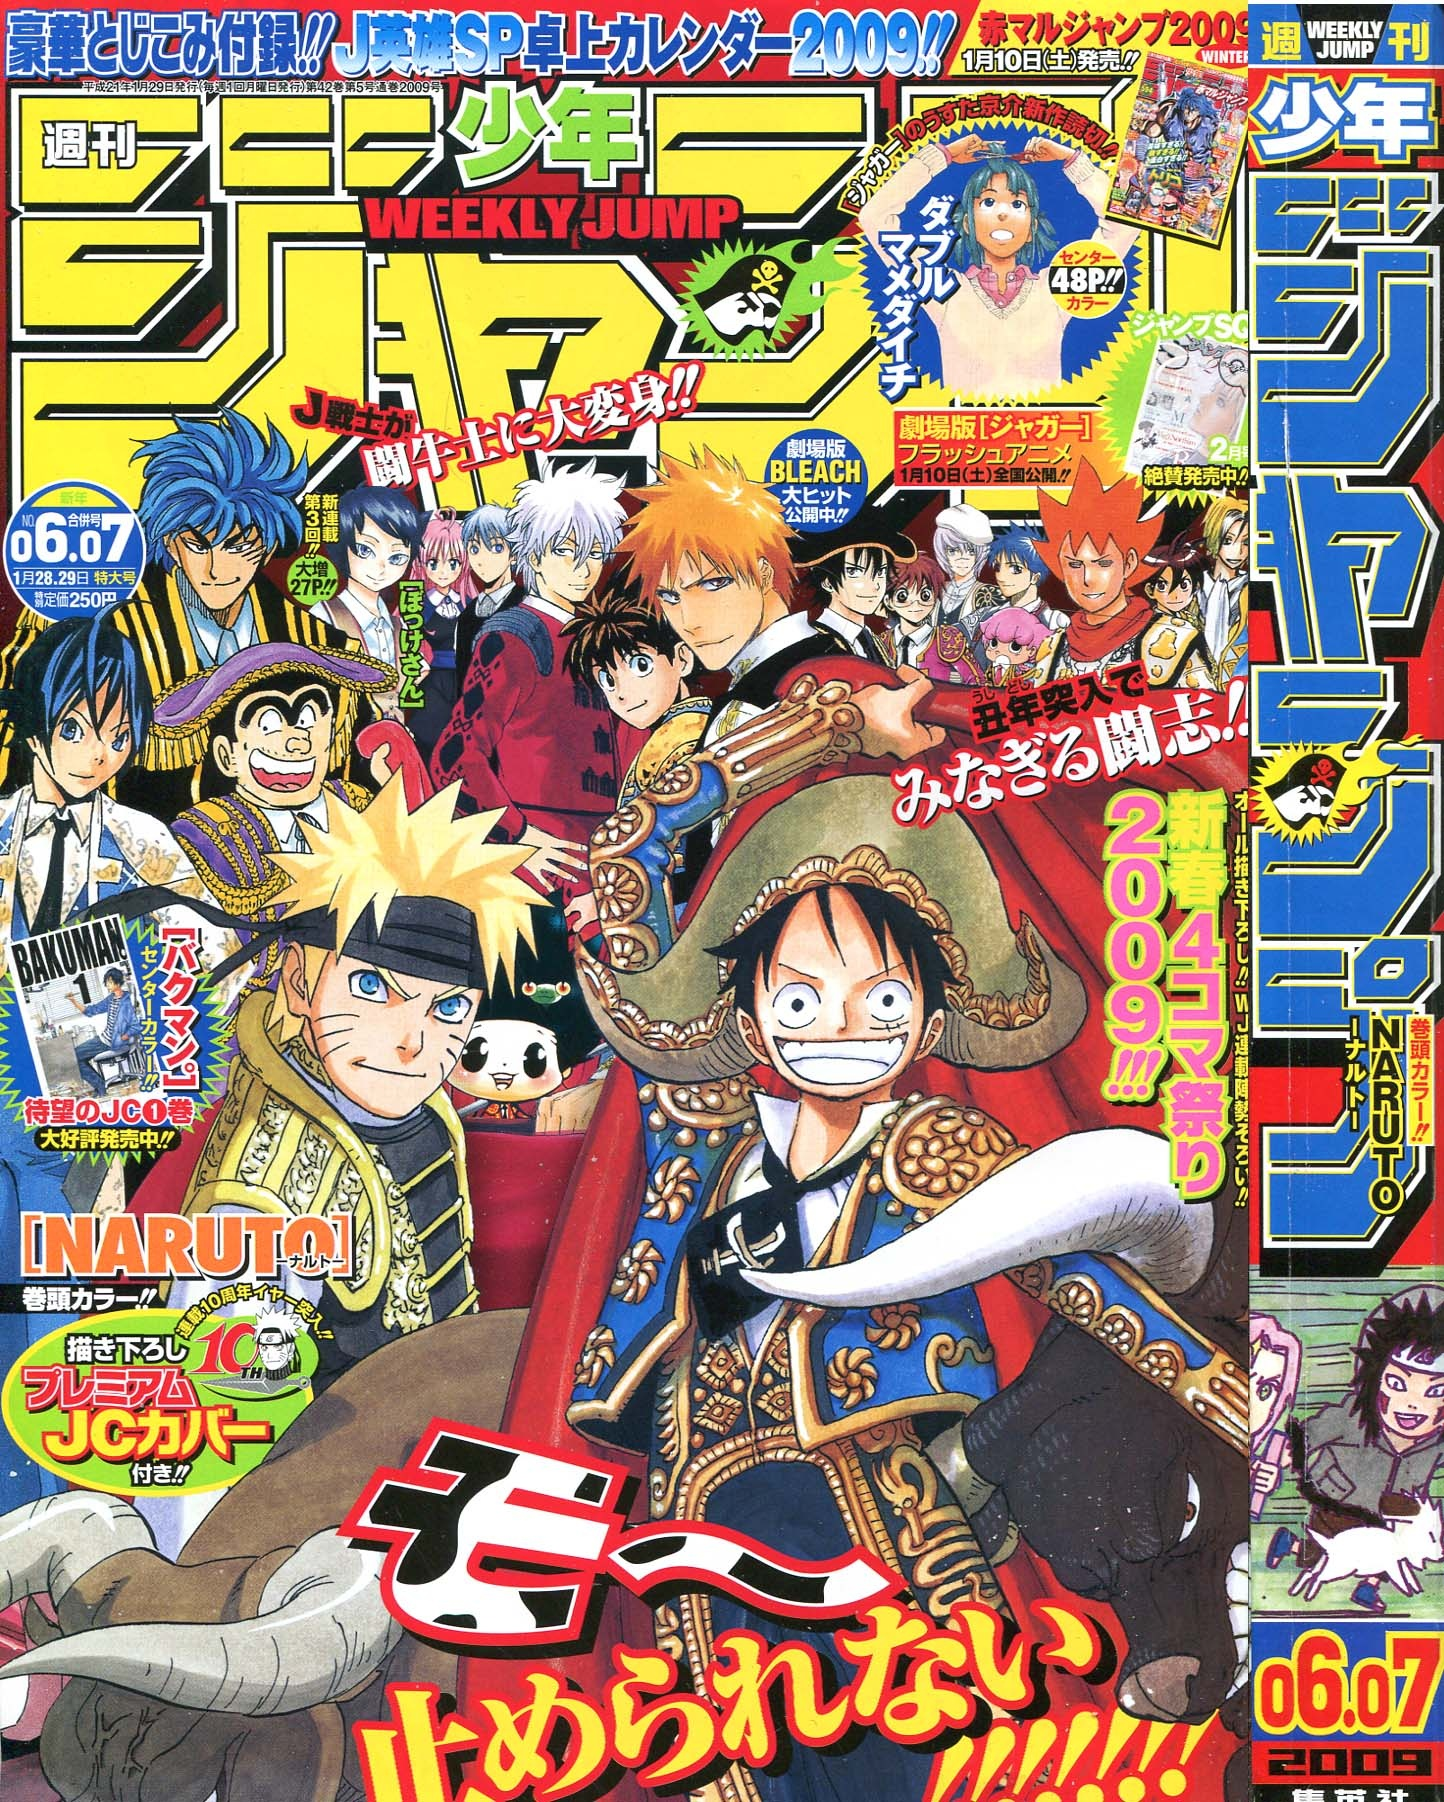 Now that Naruto and Bleach have both ended, which new serial